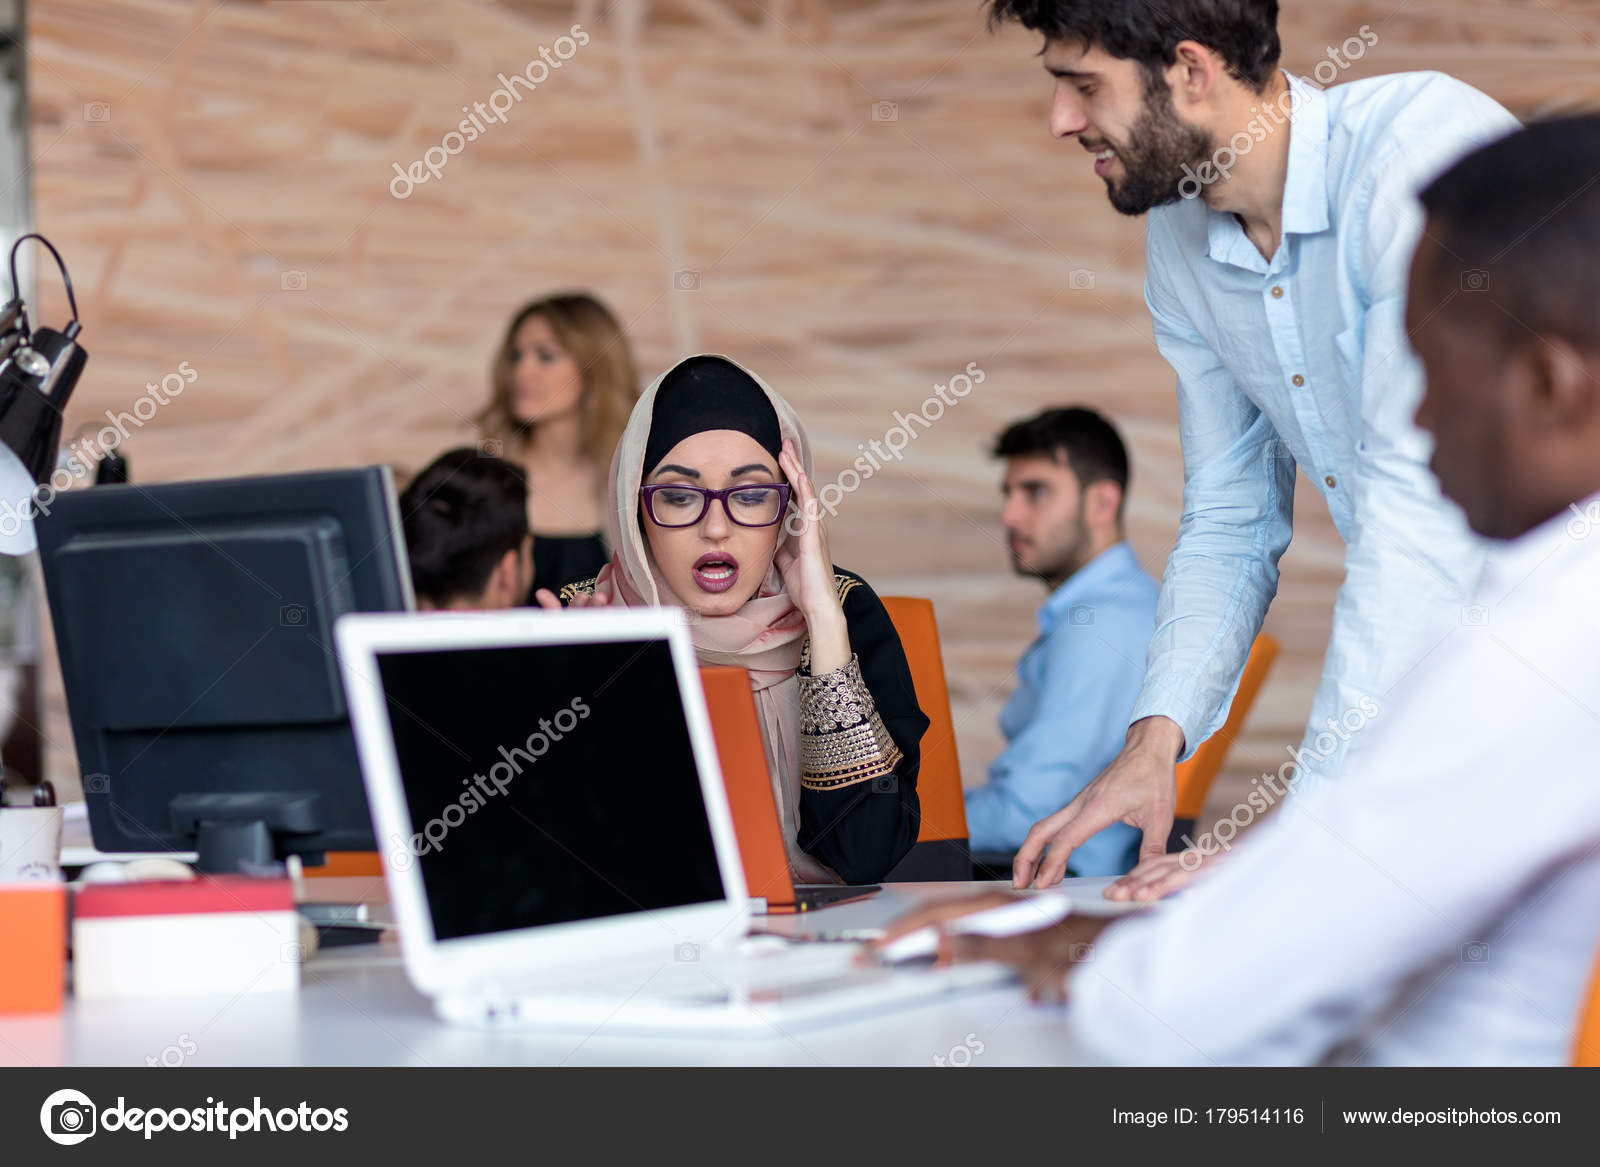 Diverse College Students Using Laptop And Talking Learning Exchanging Ideas Stock Photo